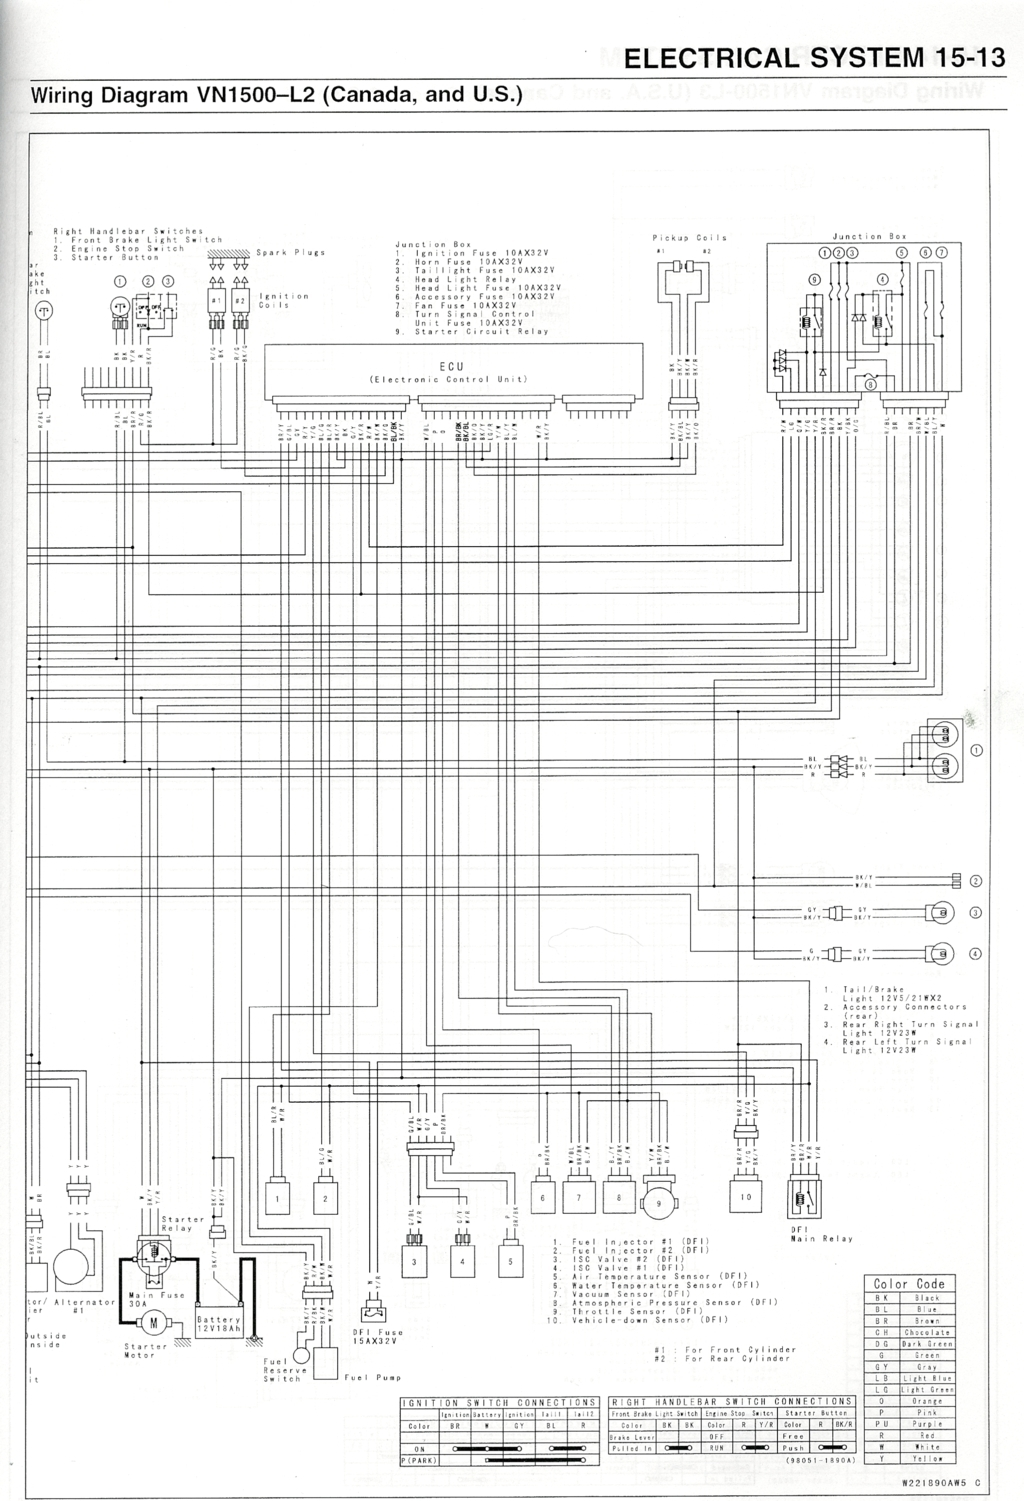 nomad_wiring_diagram_p2 vulcan wiring diagrams gadget's fixit page Kawasaki Vulcan 1500 Wiring Diagram at nearapp.co